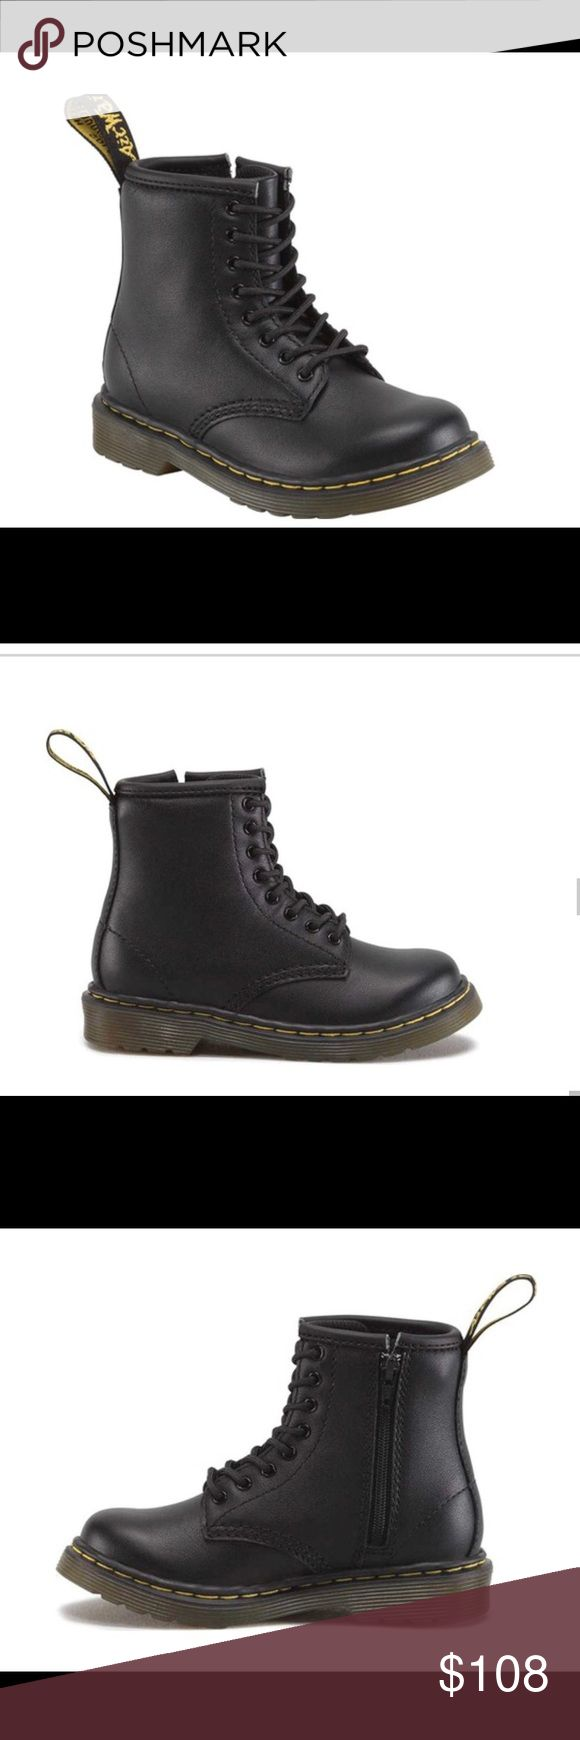 BNIB DR MARTENS BROOKLEE BOOT BLACK SOFTY T🖤✔️ HIT BUY BUTTON OR BUNDLE FOR A BETTER DISCOUNT. CLOSET CLEARANCE EVERYTHING MUST GO ASAP. THANK YOU AND GOD BLESS. MOST REASONABLE OFFERS WILL BE ACCEPTED. XXOO  IF YOU HAVE ANY QUESTIONS PLEASE ASK BEFORE PURCHASING. THANK YOU 🙏🏼 Dr. Martens Shoes